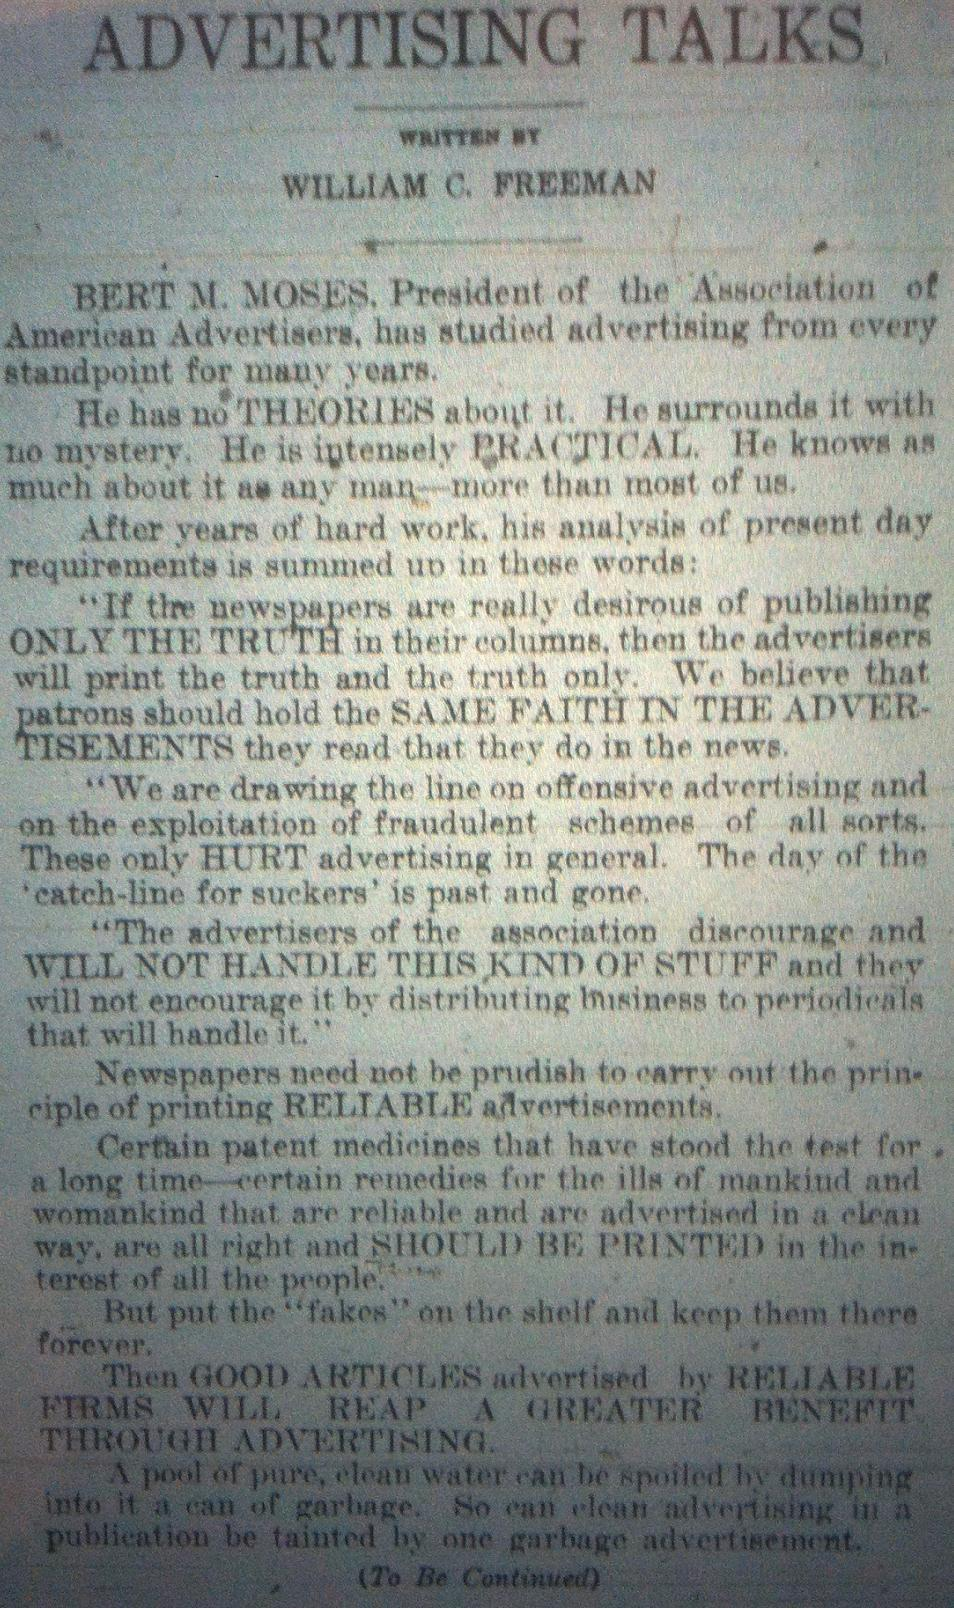 Sunday Adverts: Advertising, 1911 Mad Men